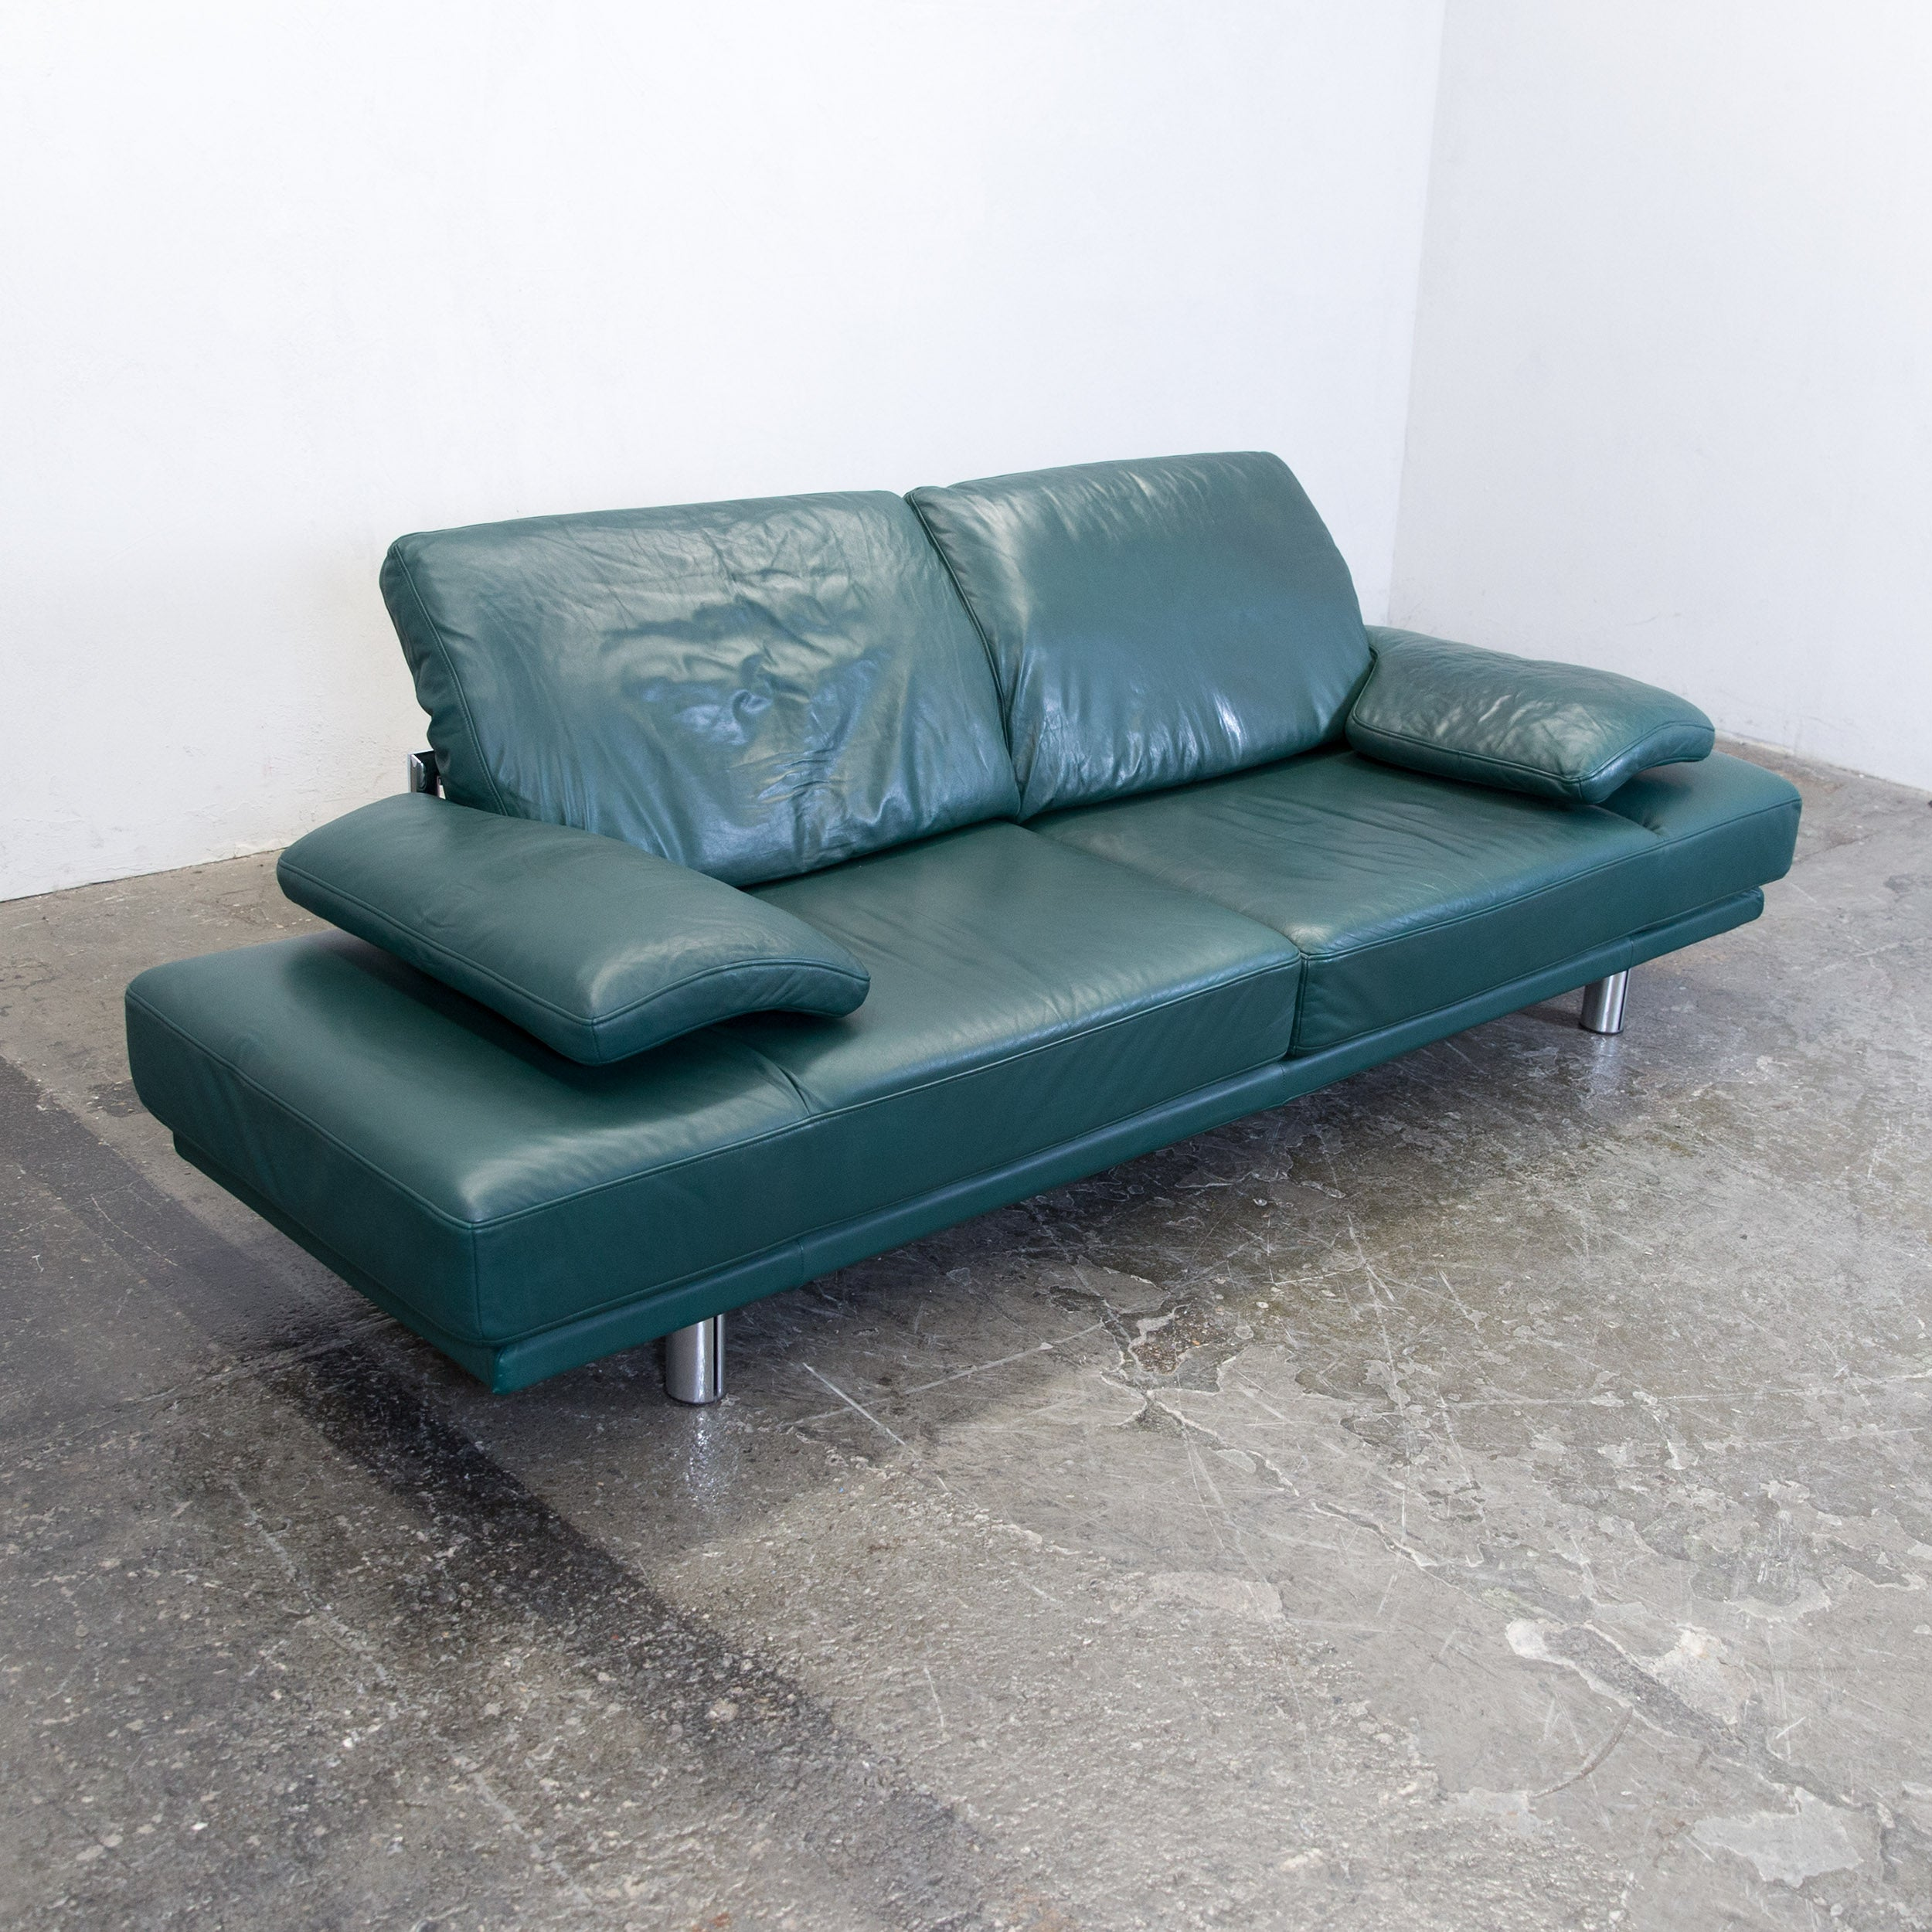 Rolf Benz Couch Rolf Benz 2400 Designer Sofa Leather Green Relax Three Seat Couch Recliner